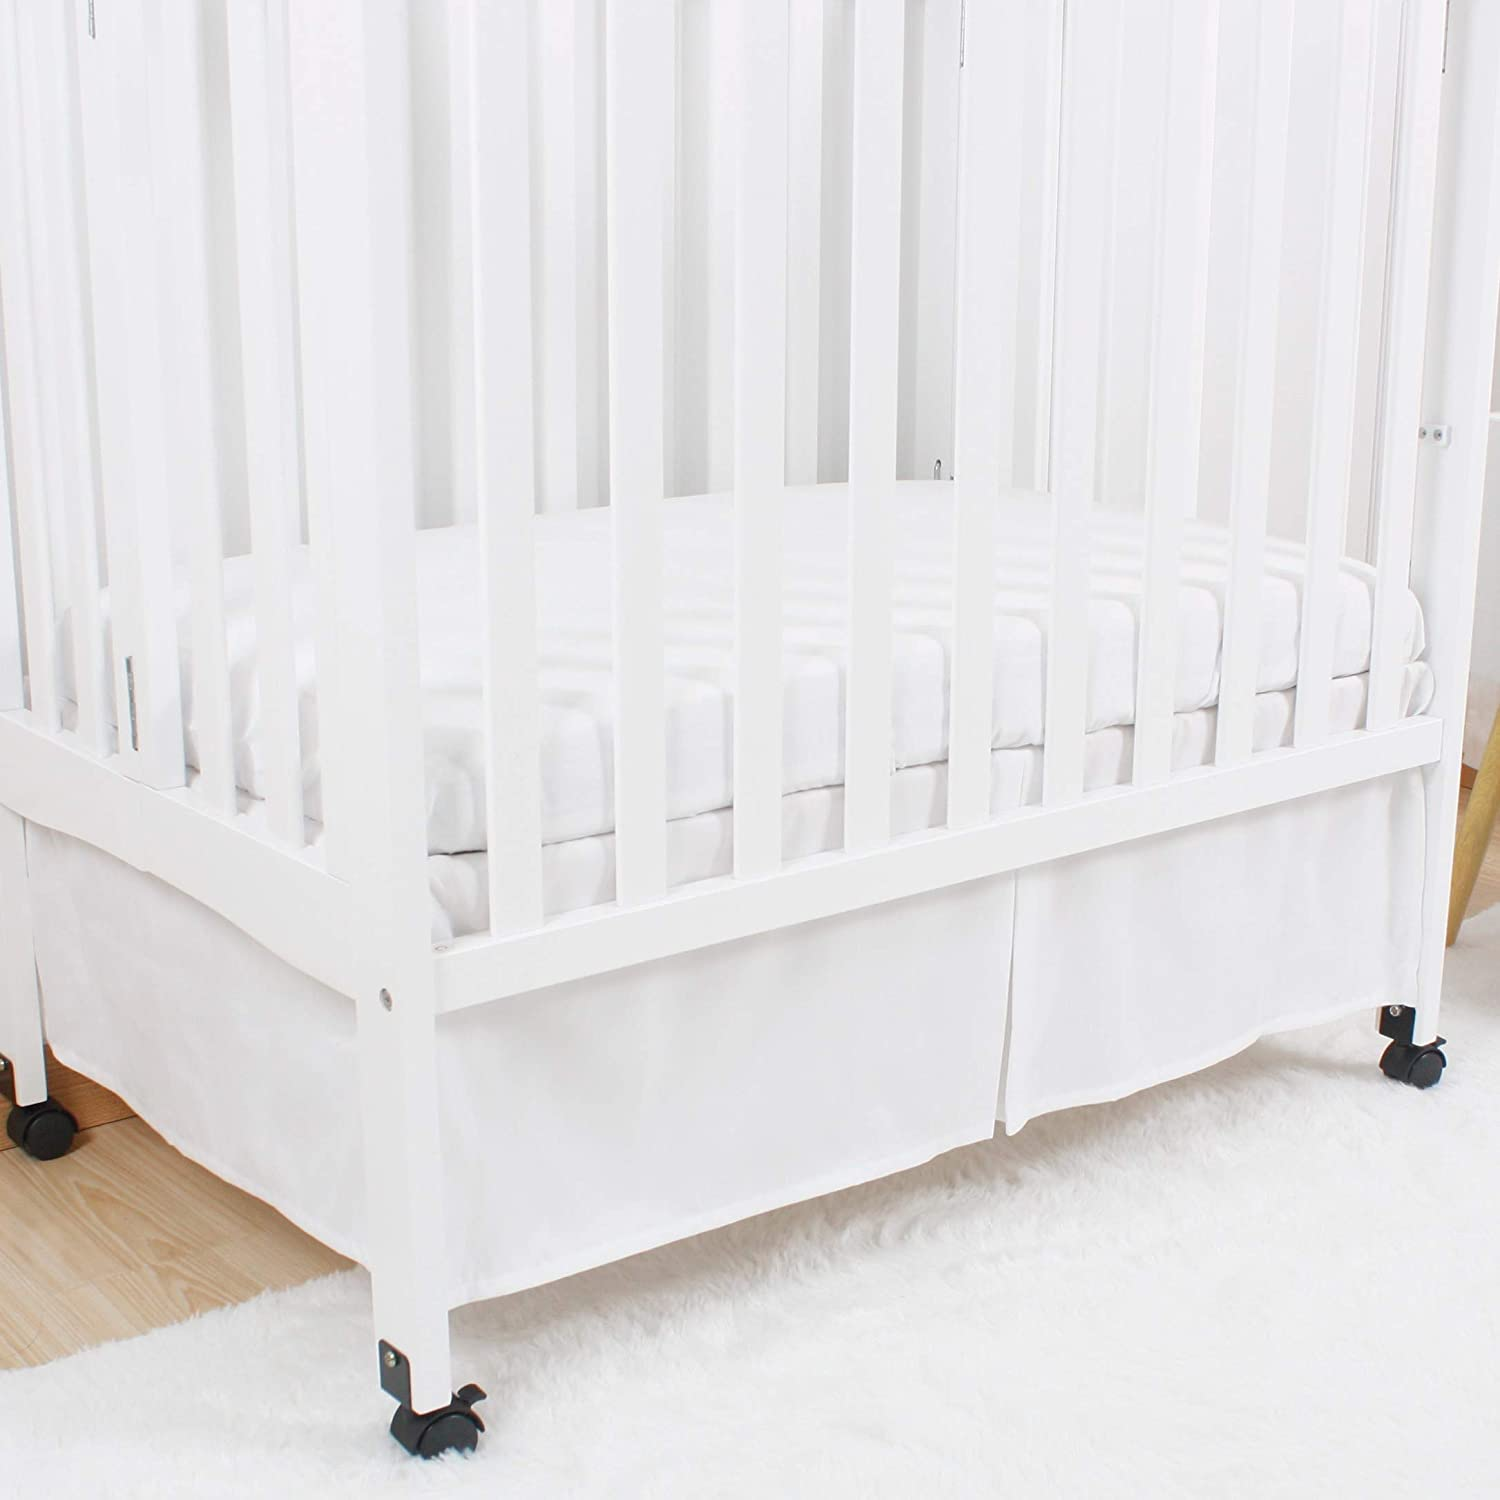 CaSaJa Mini Crib Skirt Pleated, Silk-Looking Soft Microfiber Baby Bed Skirt with Durable Platform for Mini and Portable Cribs 24